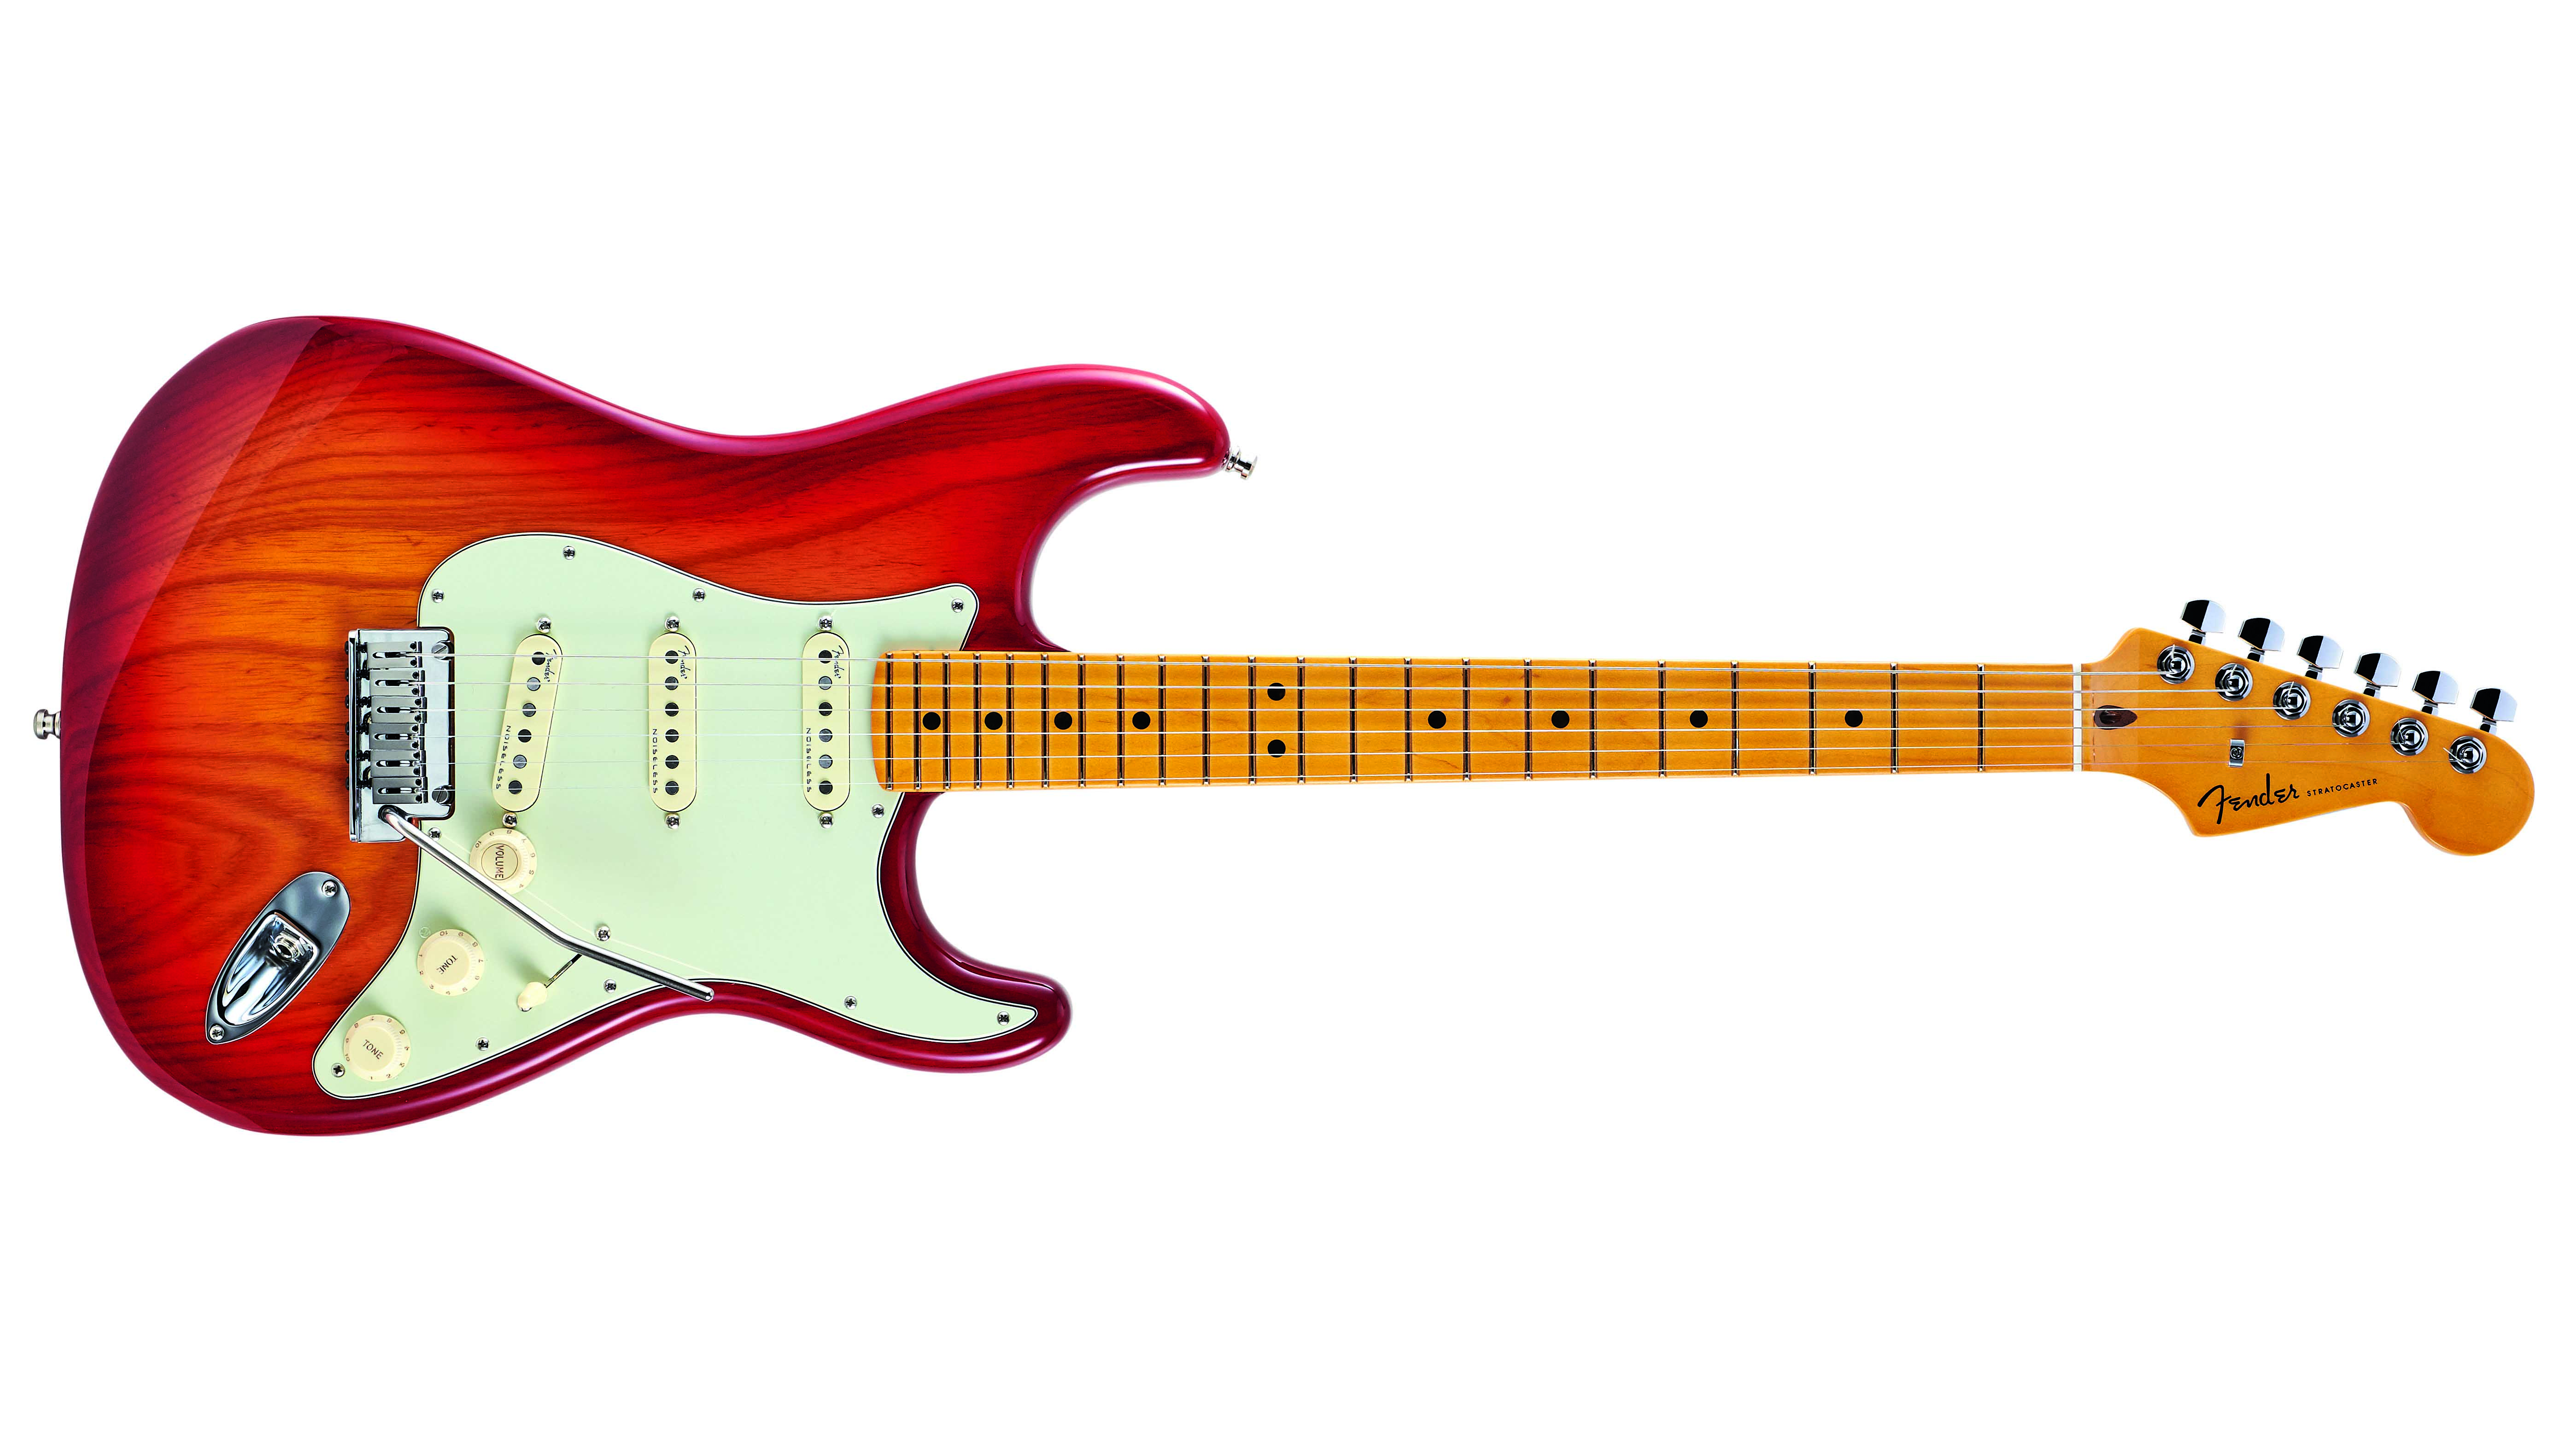 Stratocaster Guide Which Strat To Buy Model Comparison Fender >> Fender American Ultra Stratocaster Review Musicradar